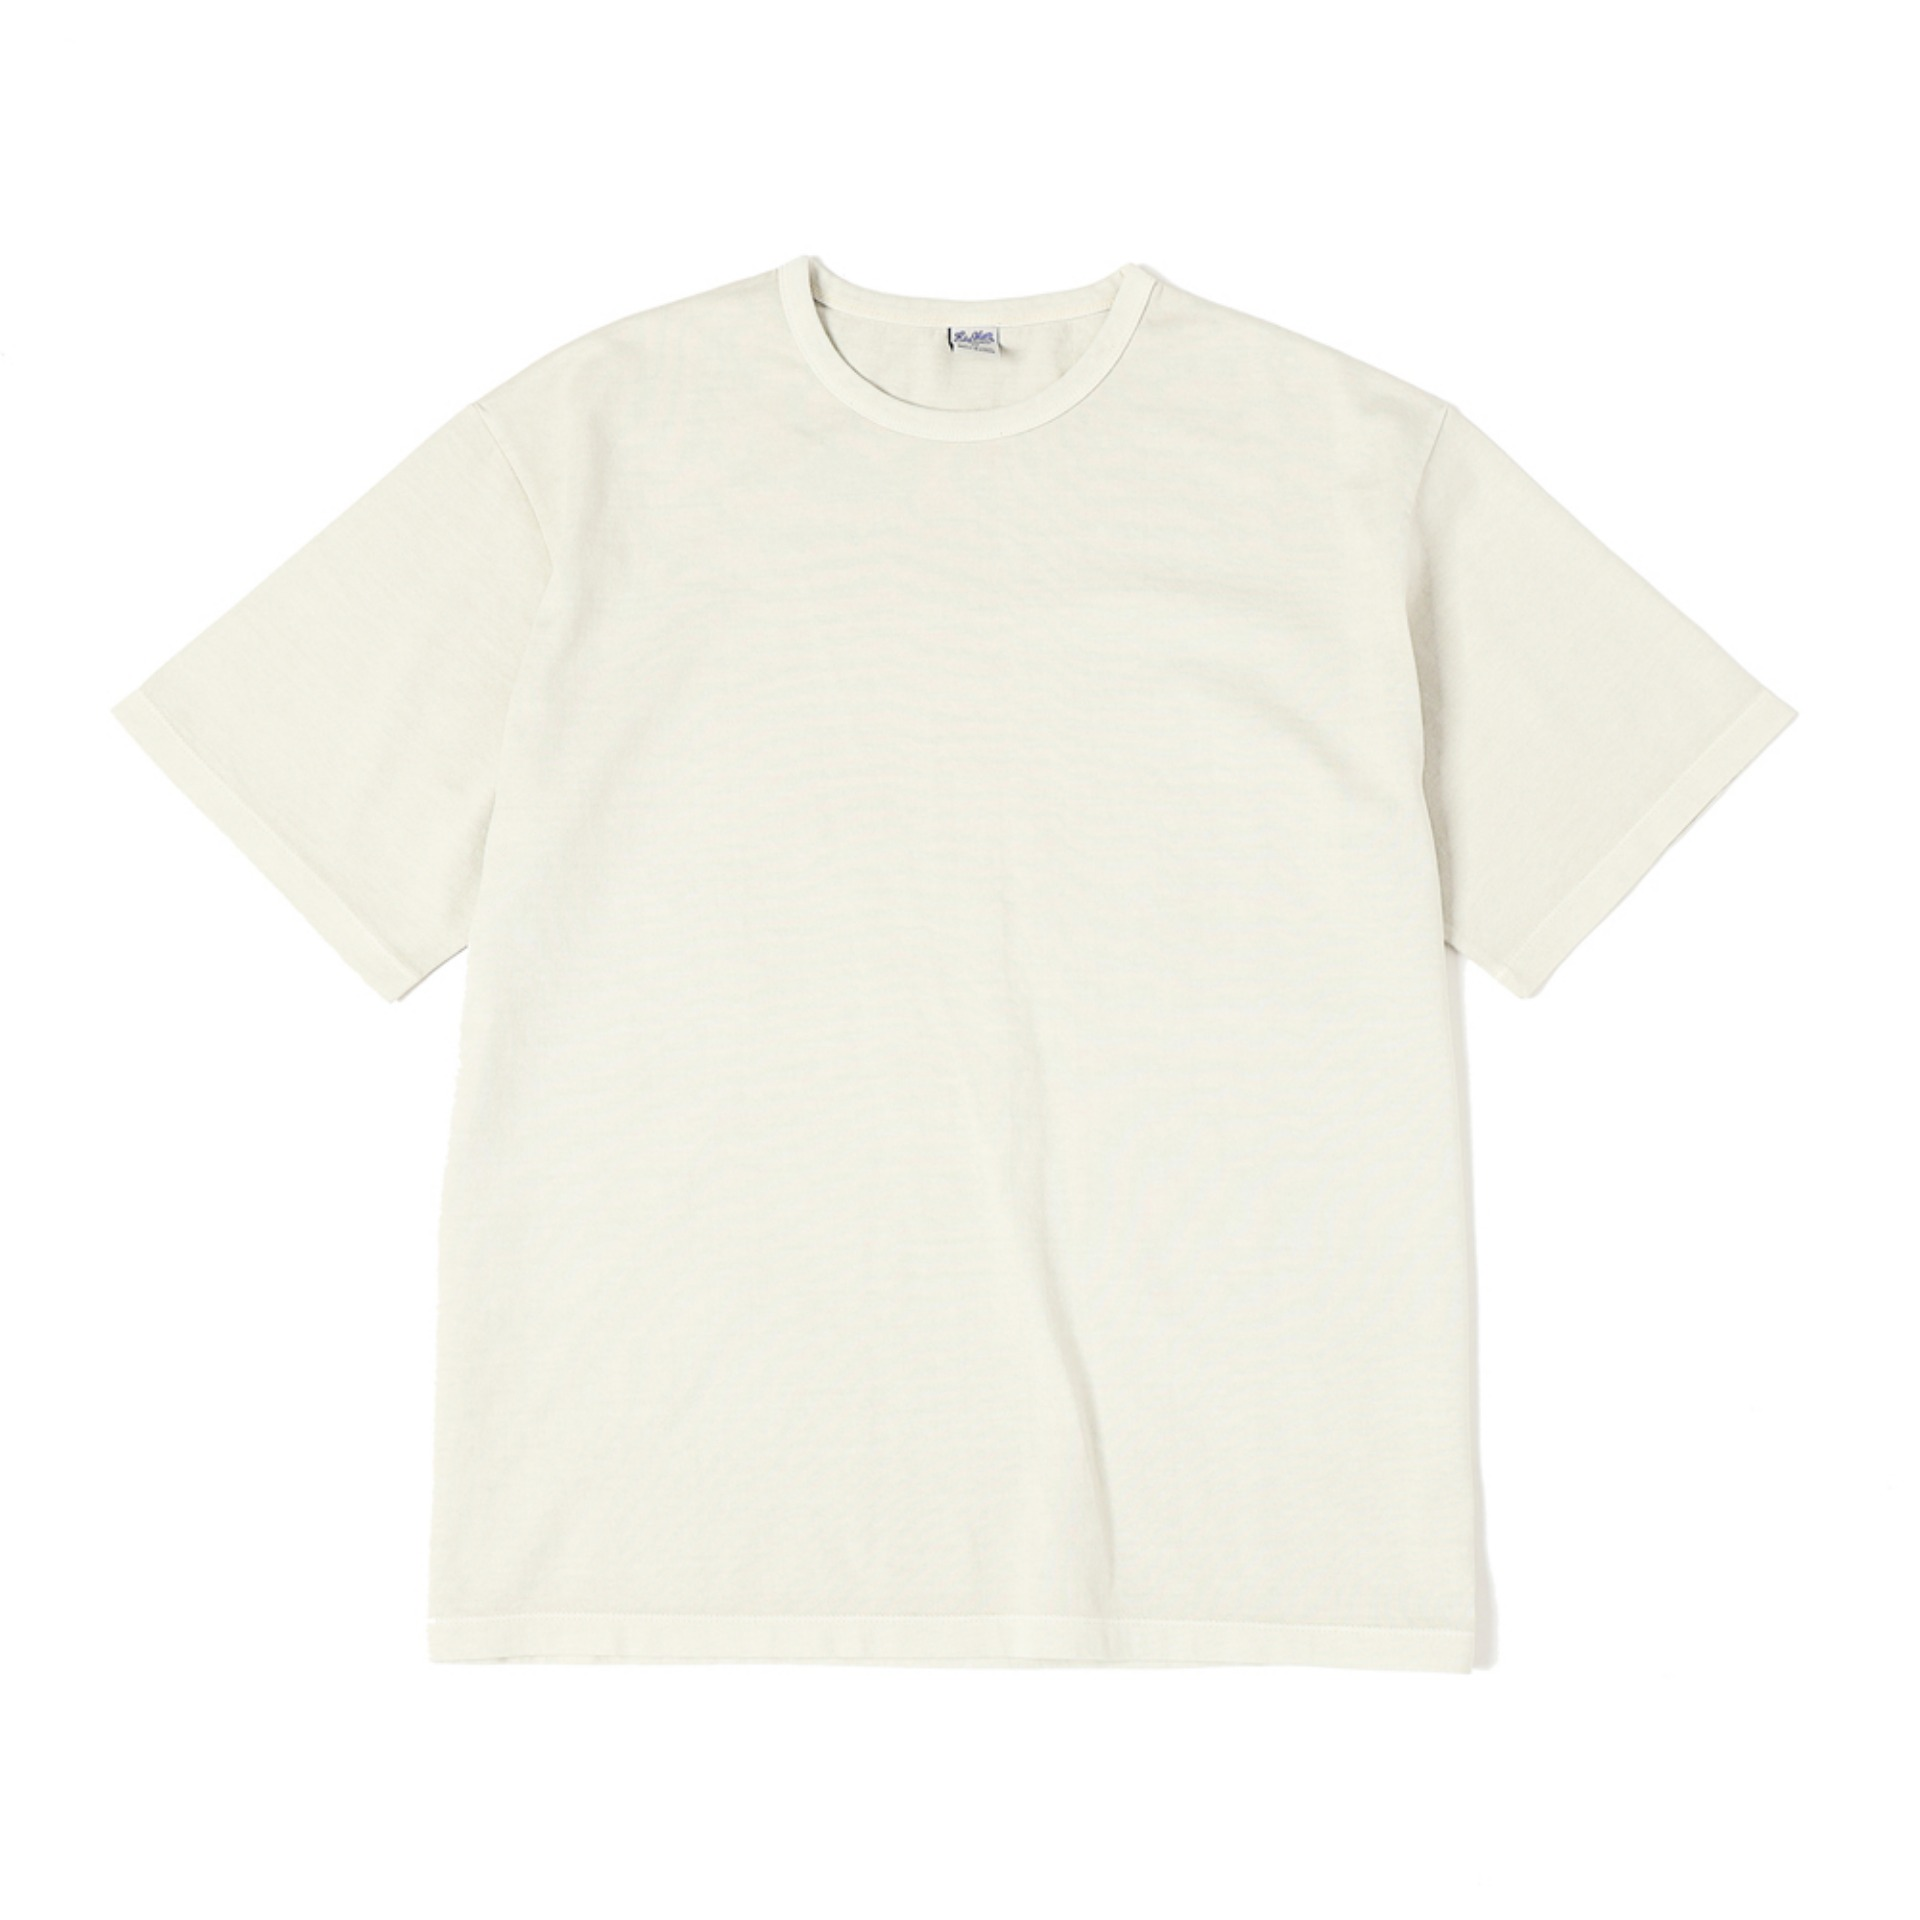 G.D. SOLID S/S TEE(NATURAL)